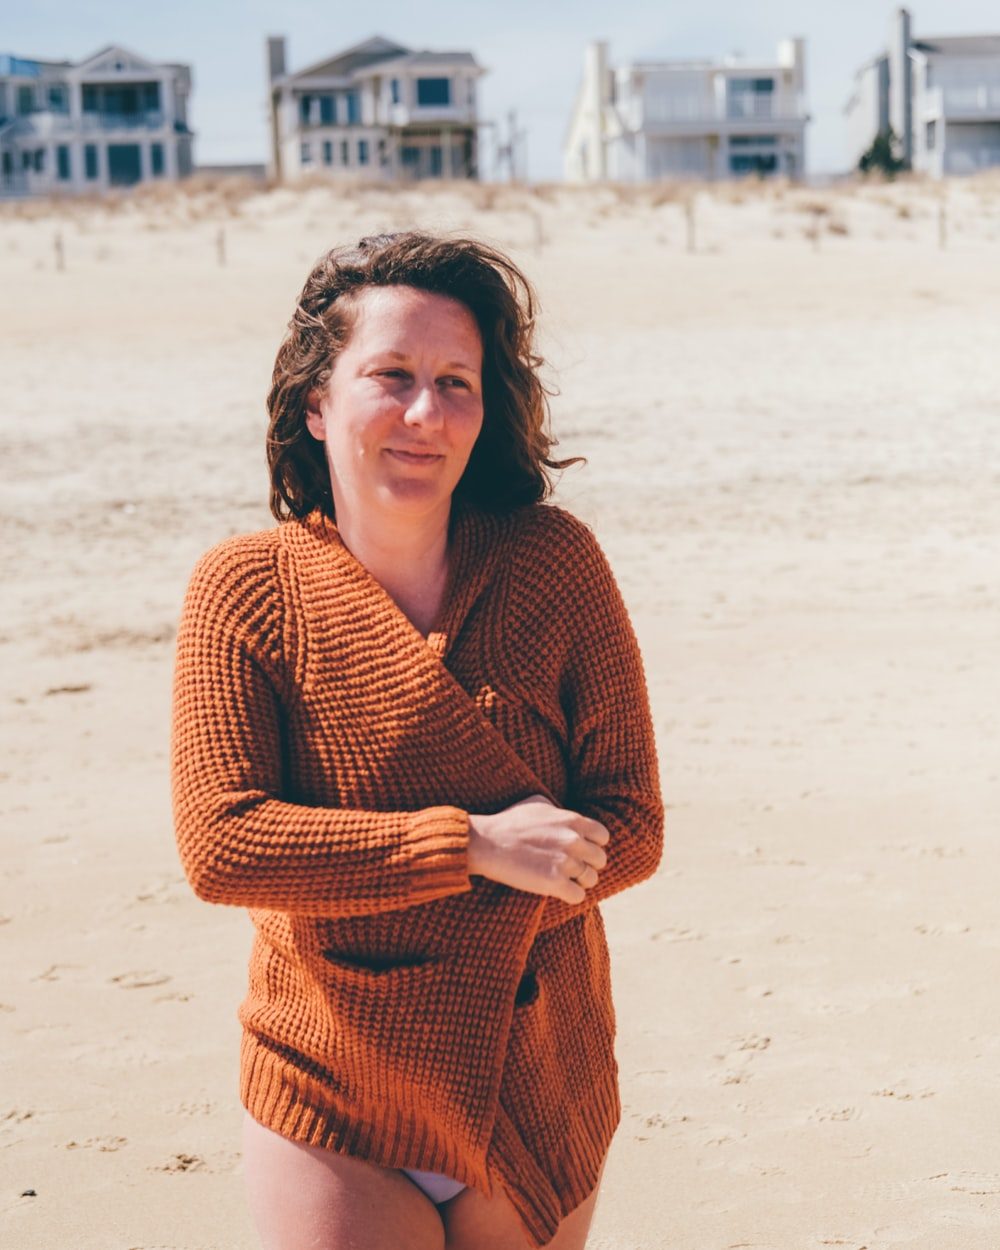 woman in red knit sweater standing on beach during daytime